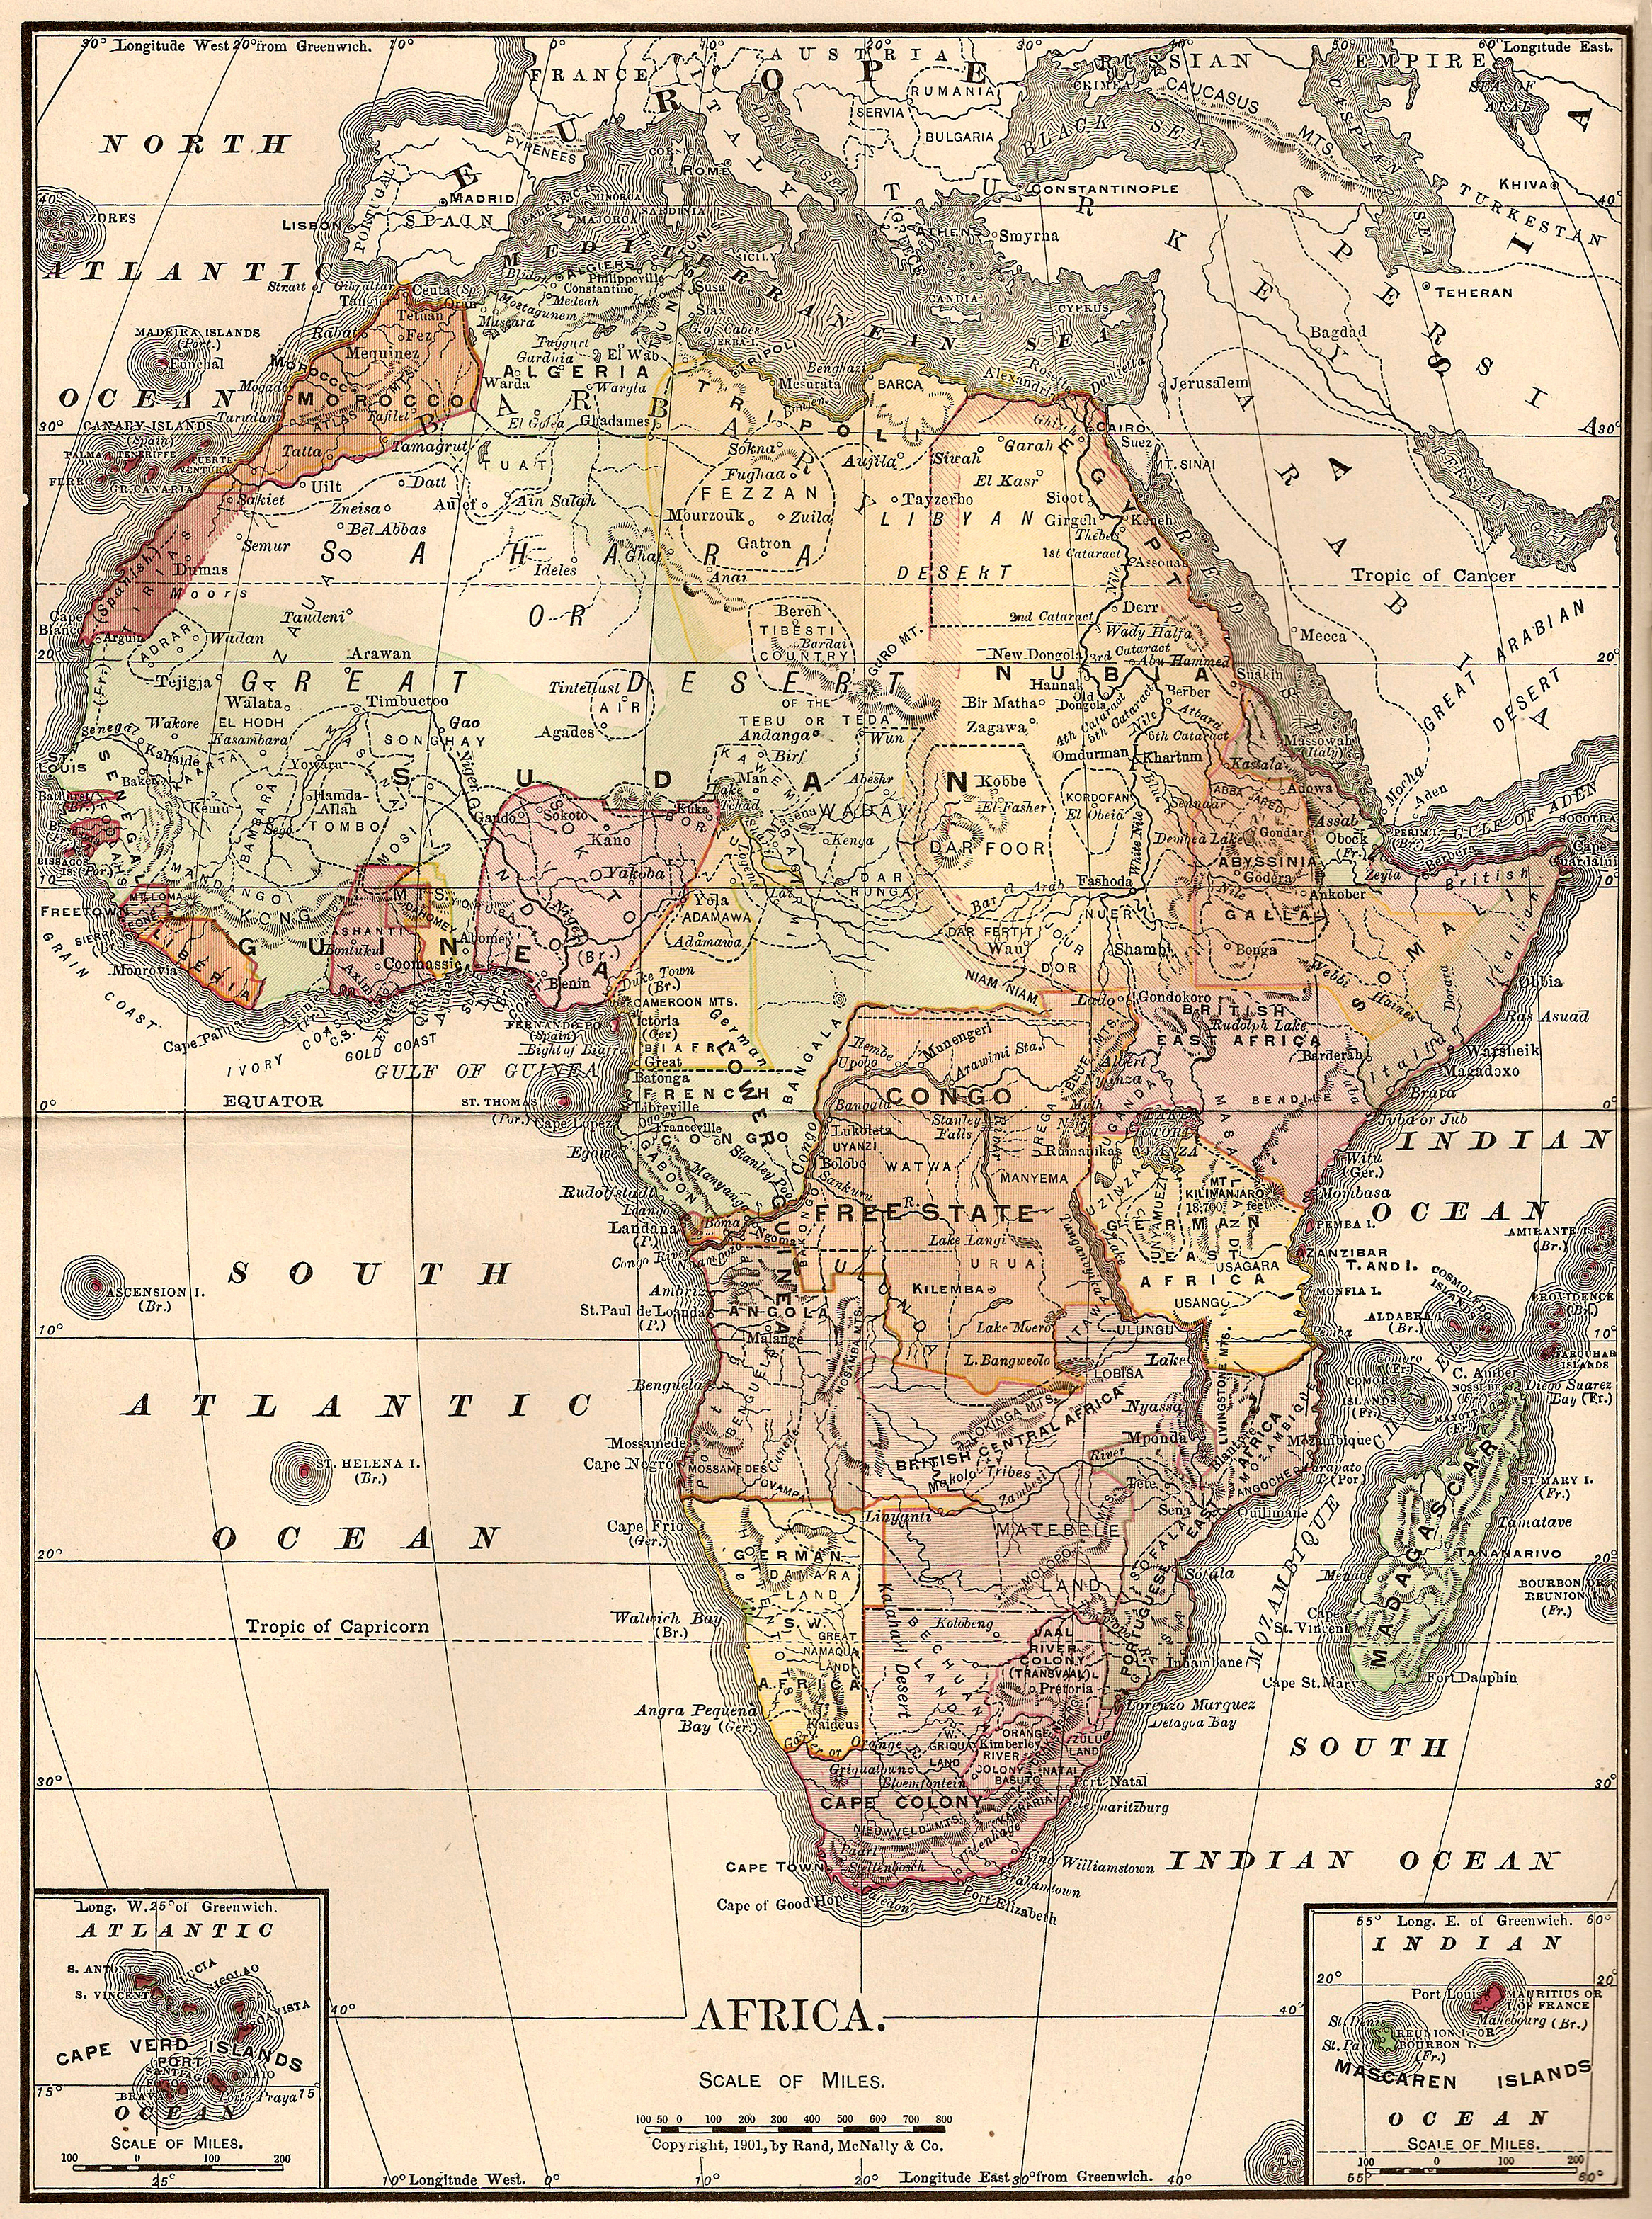 Catnipstudiocollage free vintage clip art map of africa 1901 catnipstudiocollage free vintage clip art map of africa 1901 gumiabroncs